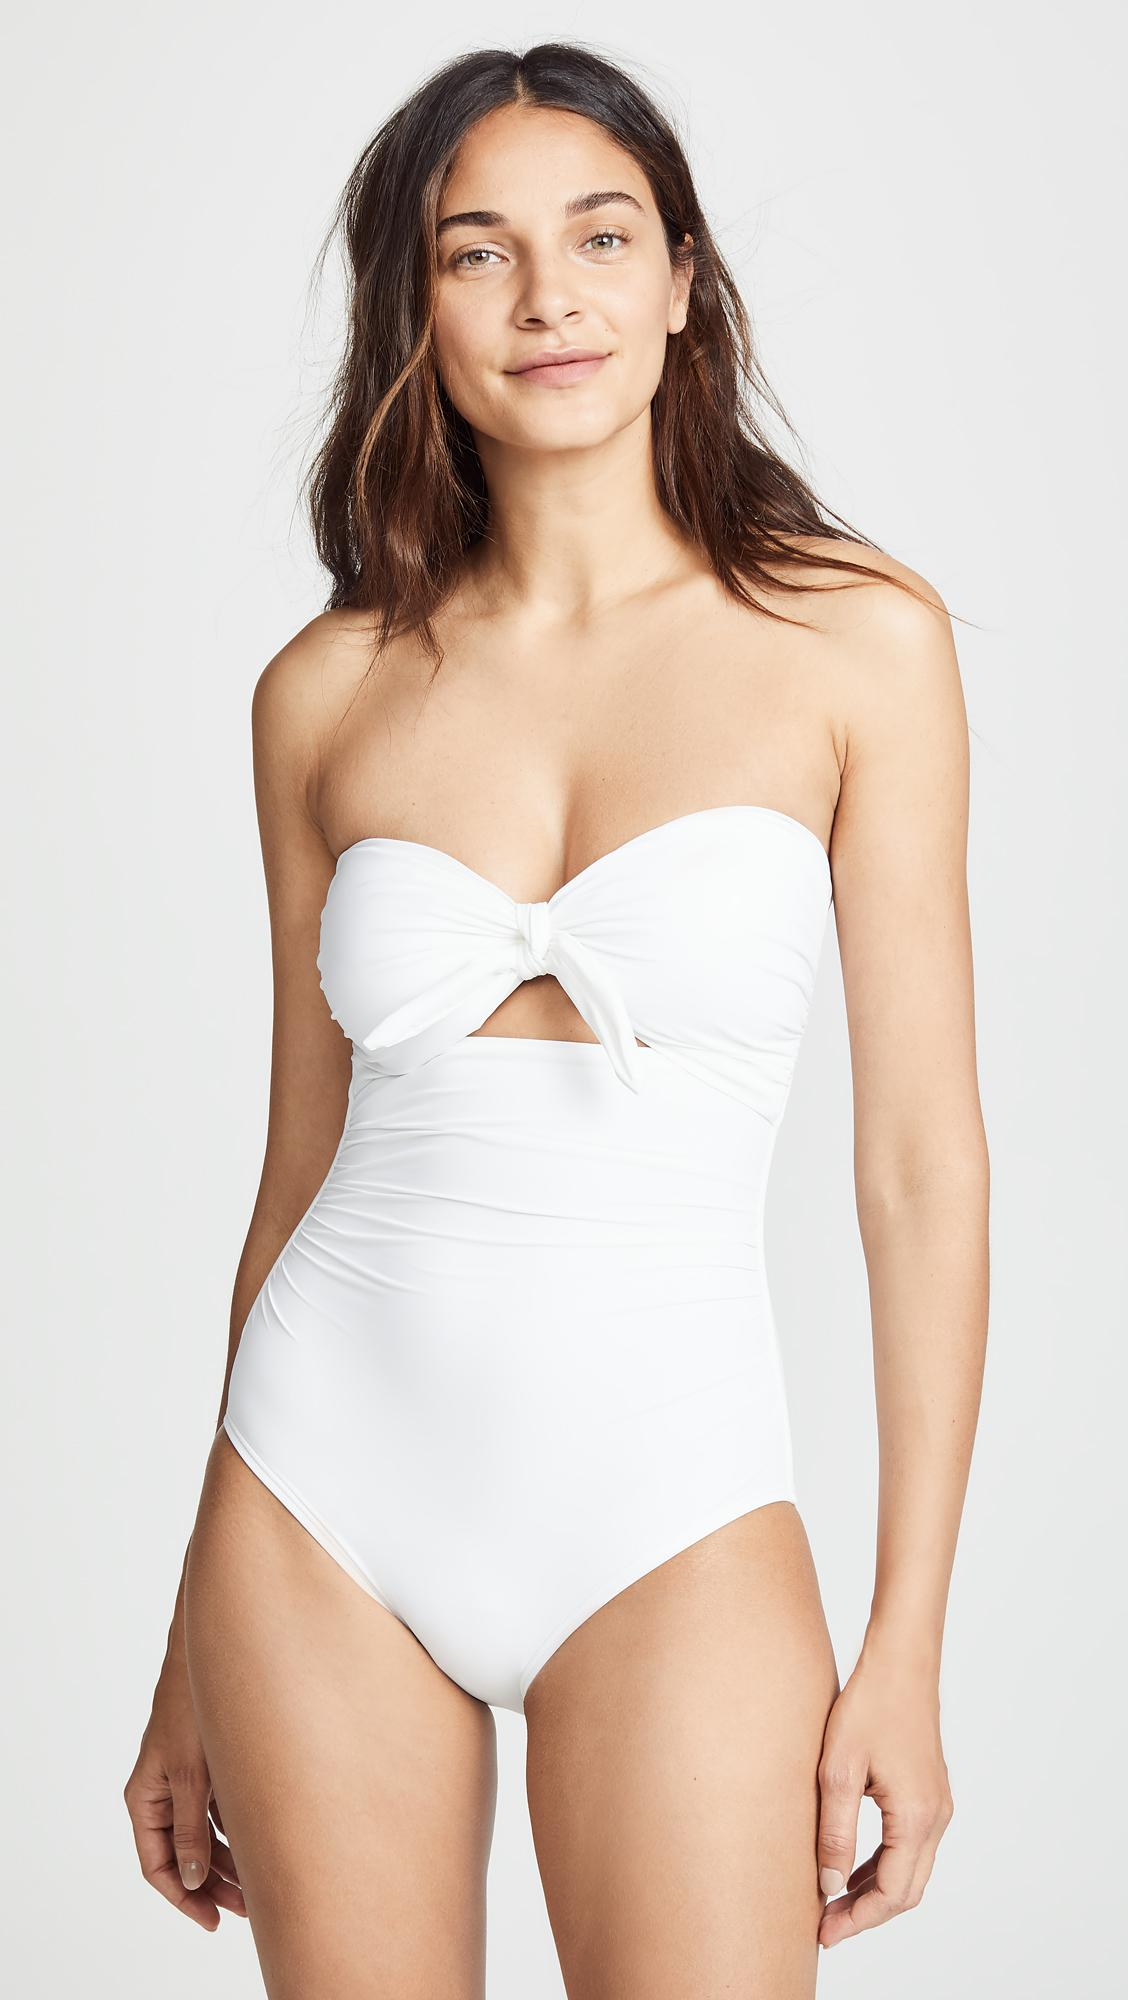 bf20a384d402 Kate Spade Grove Beach One Piece in White - Lyst